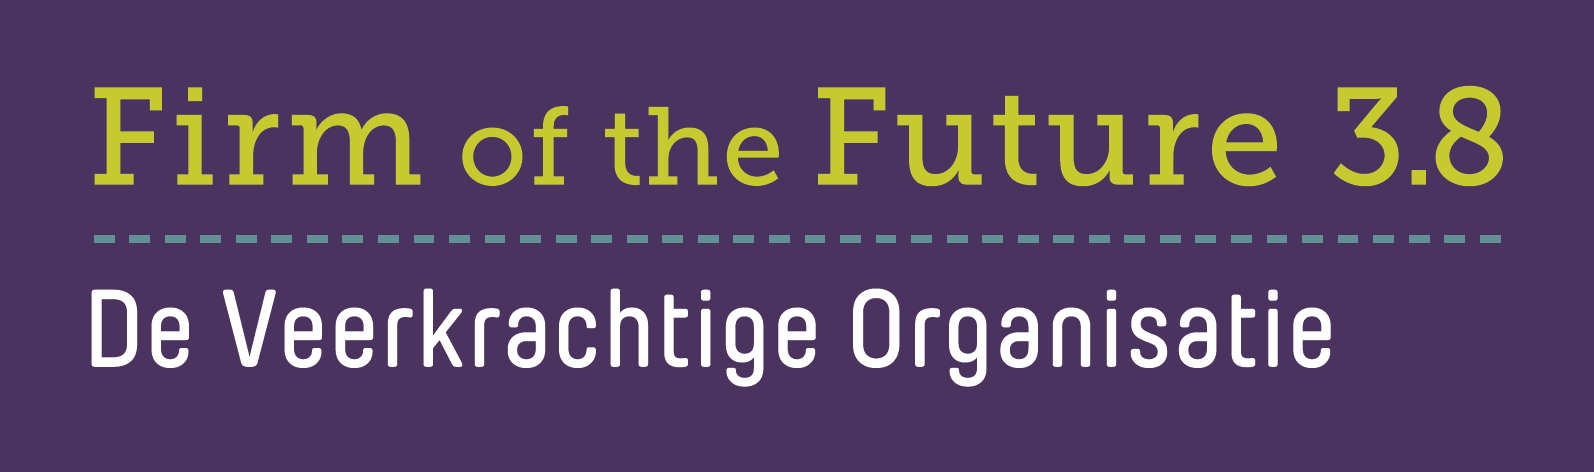 Masterclasses Firm of the Future 3.8; De Veerkrachtige Organisatie